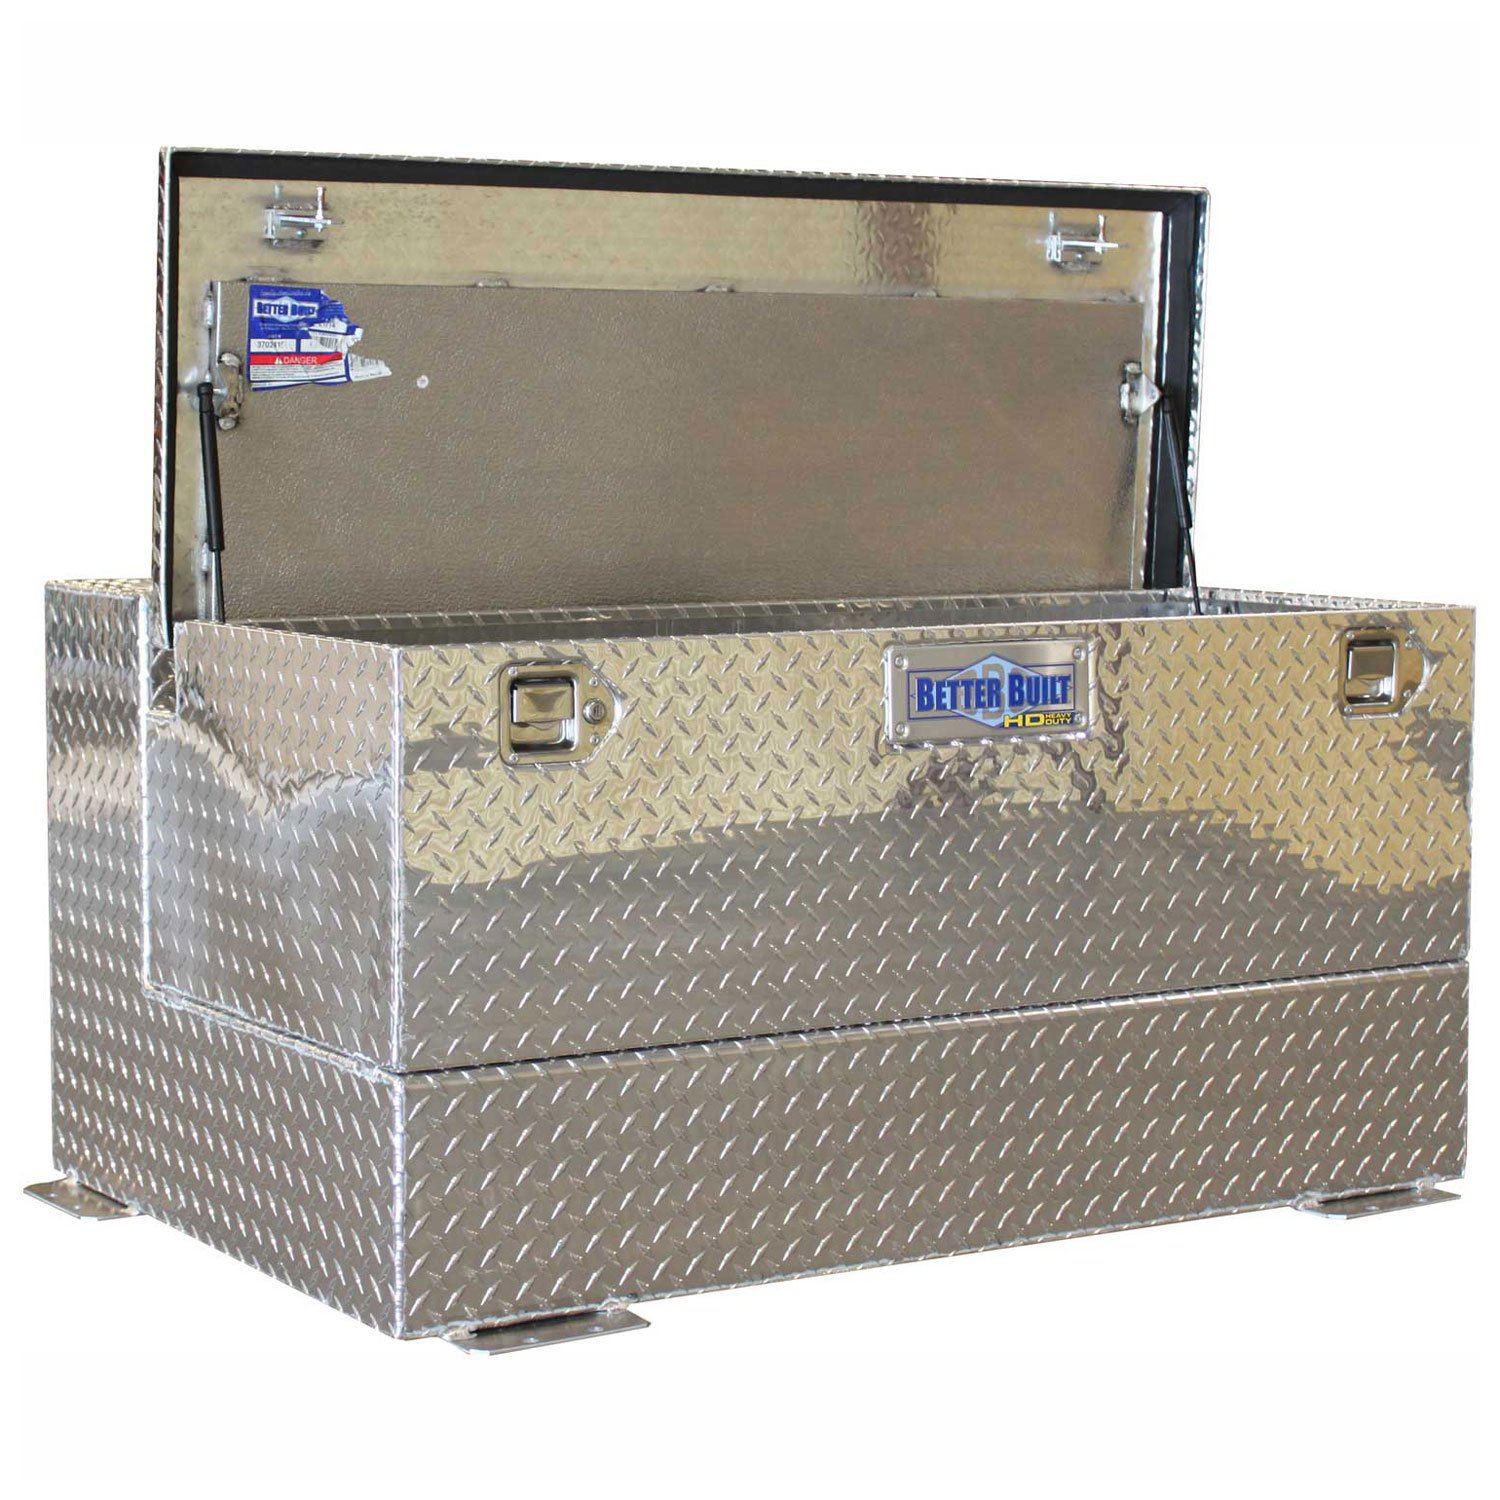 Better Built Heavy Duty Aluminum Transfer Tank, Combo Tank, 75 Gal. - 37024159